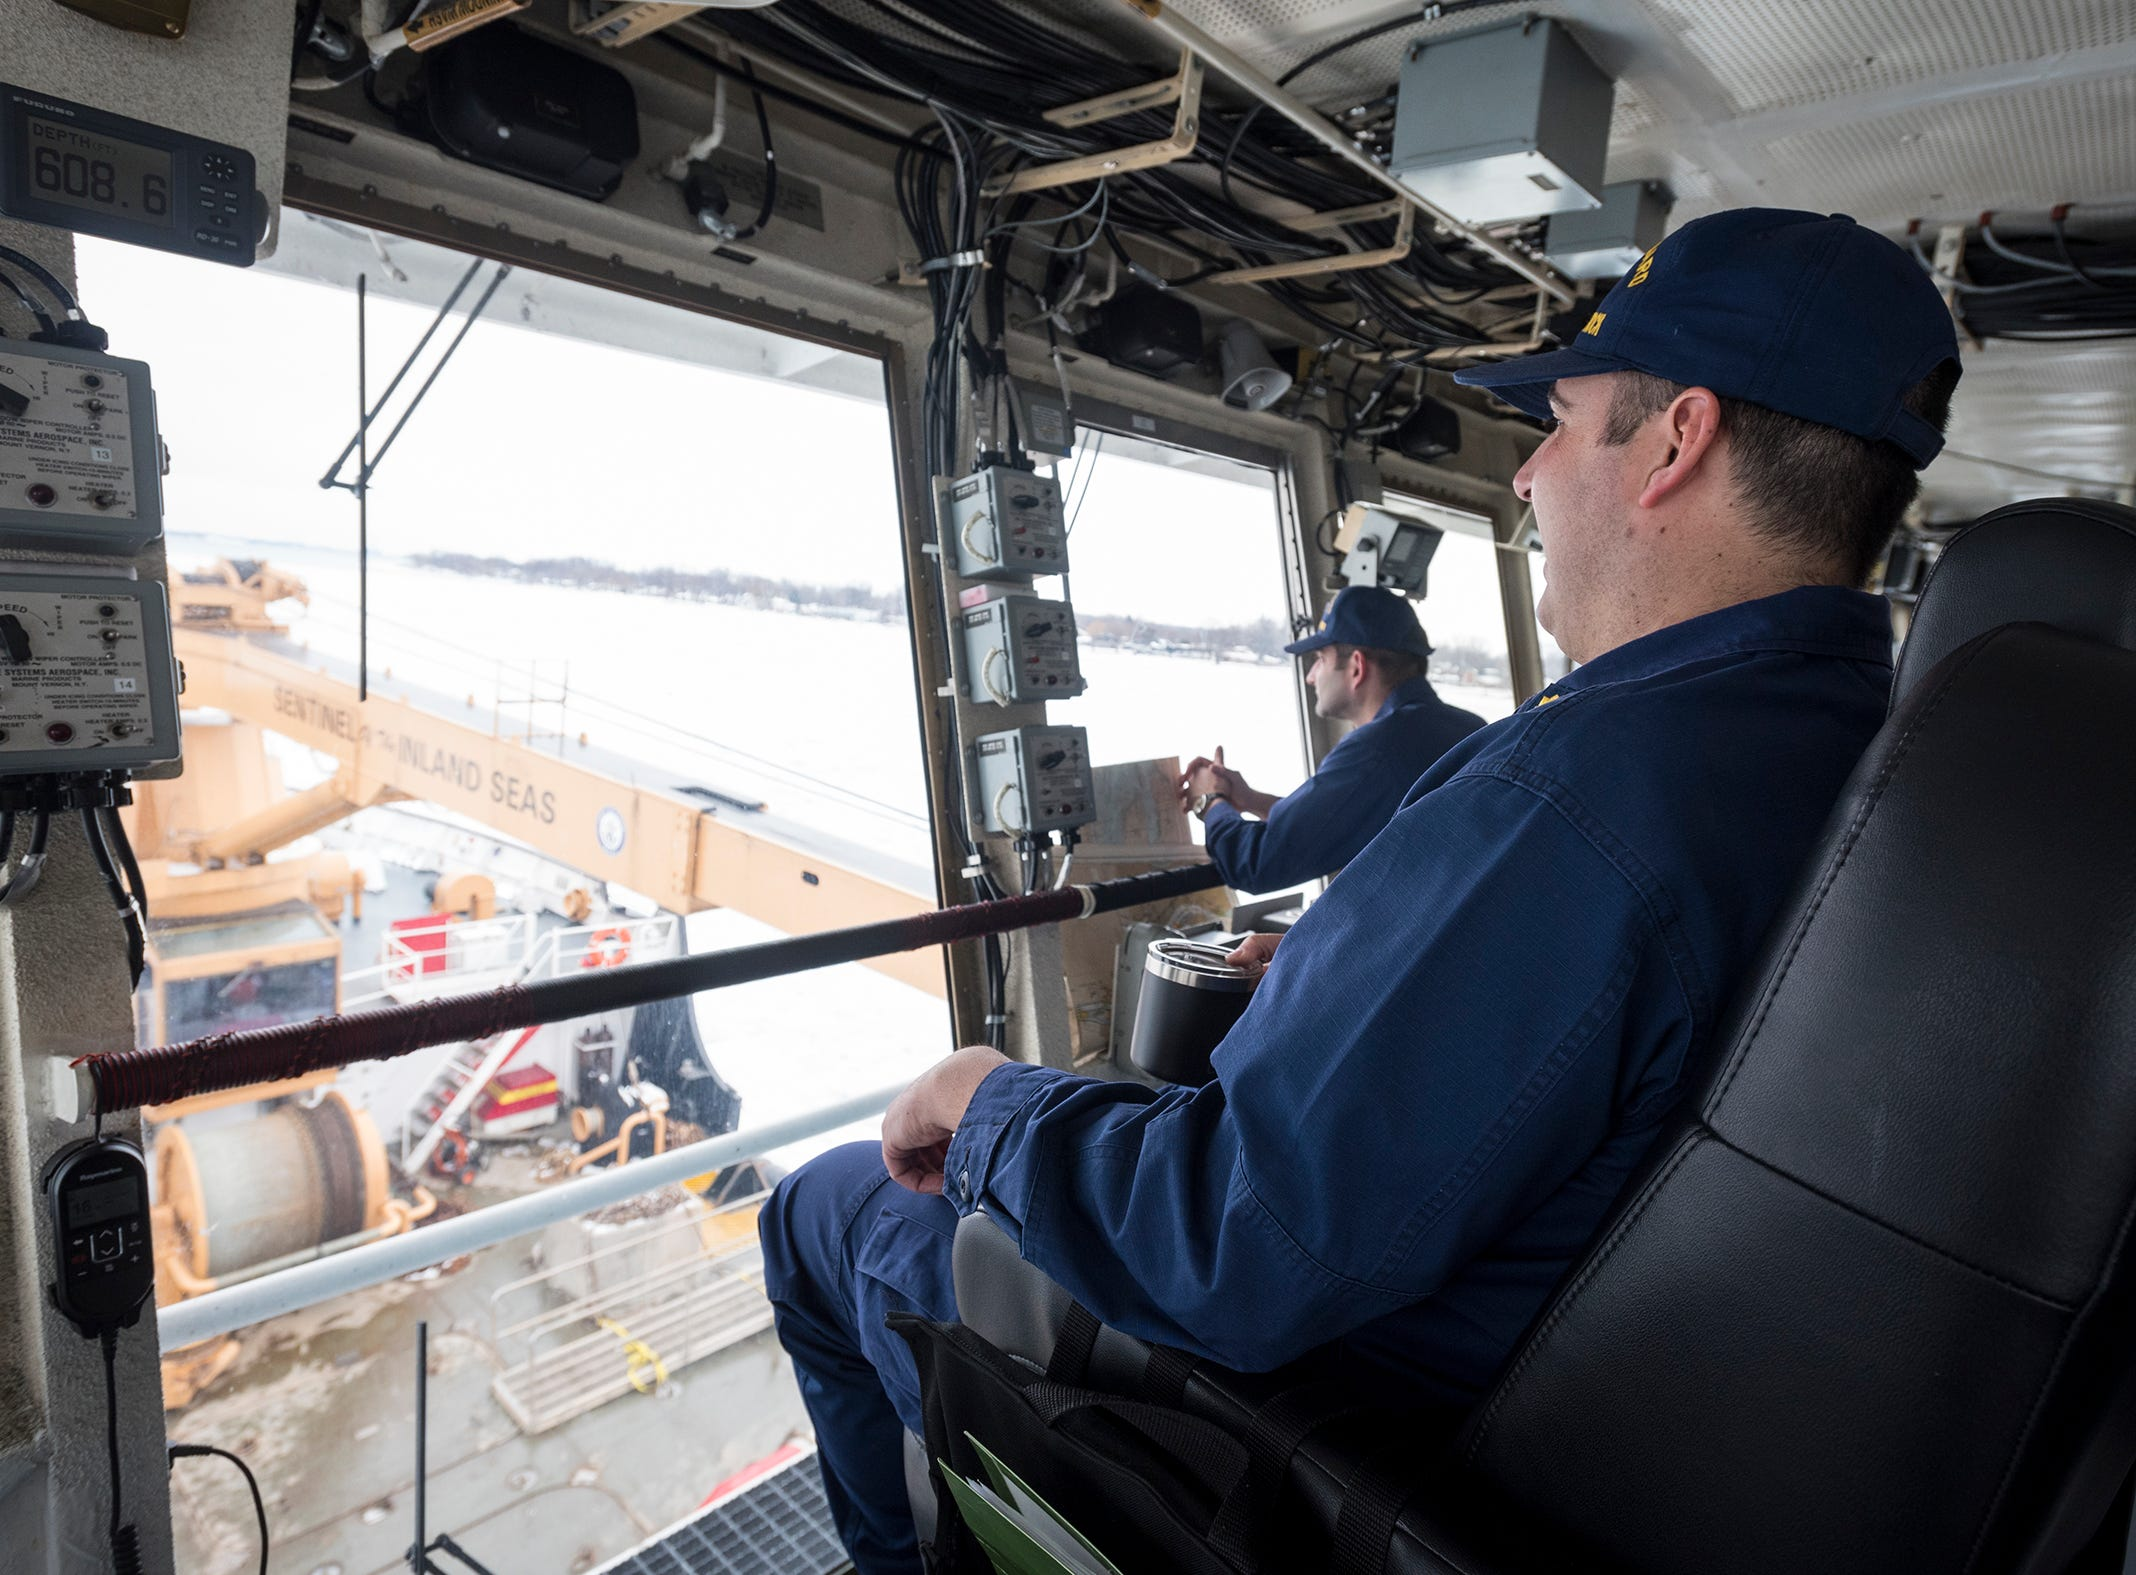 """U.S. Coast Guard Lt. Cmdr. Nick Monacelli looks out over the deck of the USCGC Hollyhock as it is downbound Wednesday, Feb. 20, 2019 on the St. Clair River. Wednesday's ice breaking mission was part of Operation Coal Shovel, a joint operation between the United States and Canada, to ensure the last freighters of the season can make it through the St. Clair-Detroit river system. """"The challenge is there's always traffic that wants to move,"""" Monacelli said. """"You always wish you had more assets that you could run 24/7."""""""